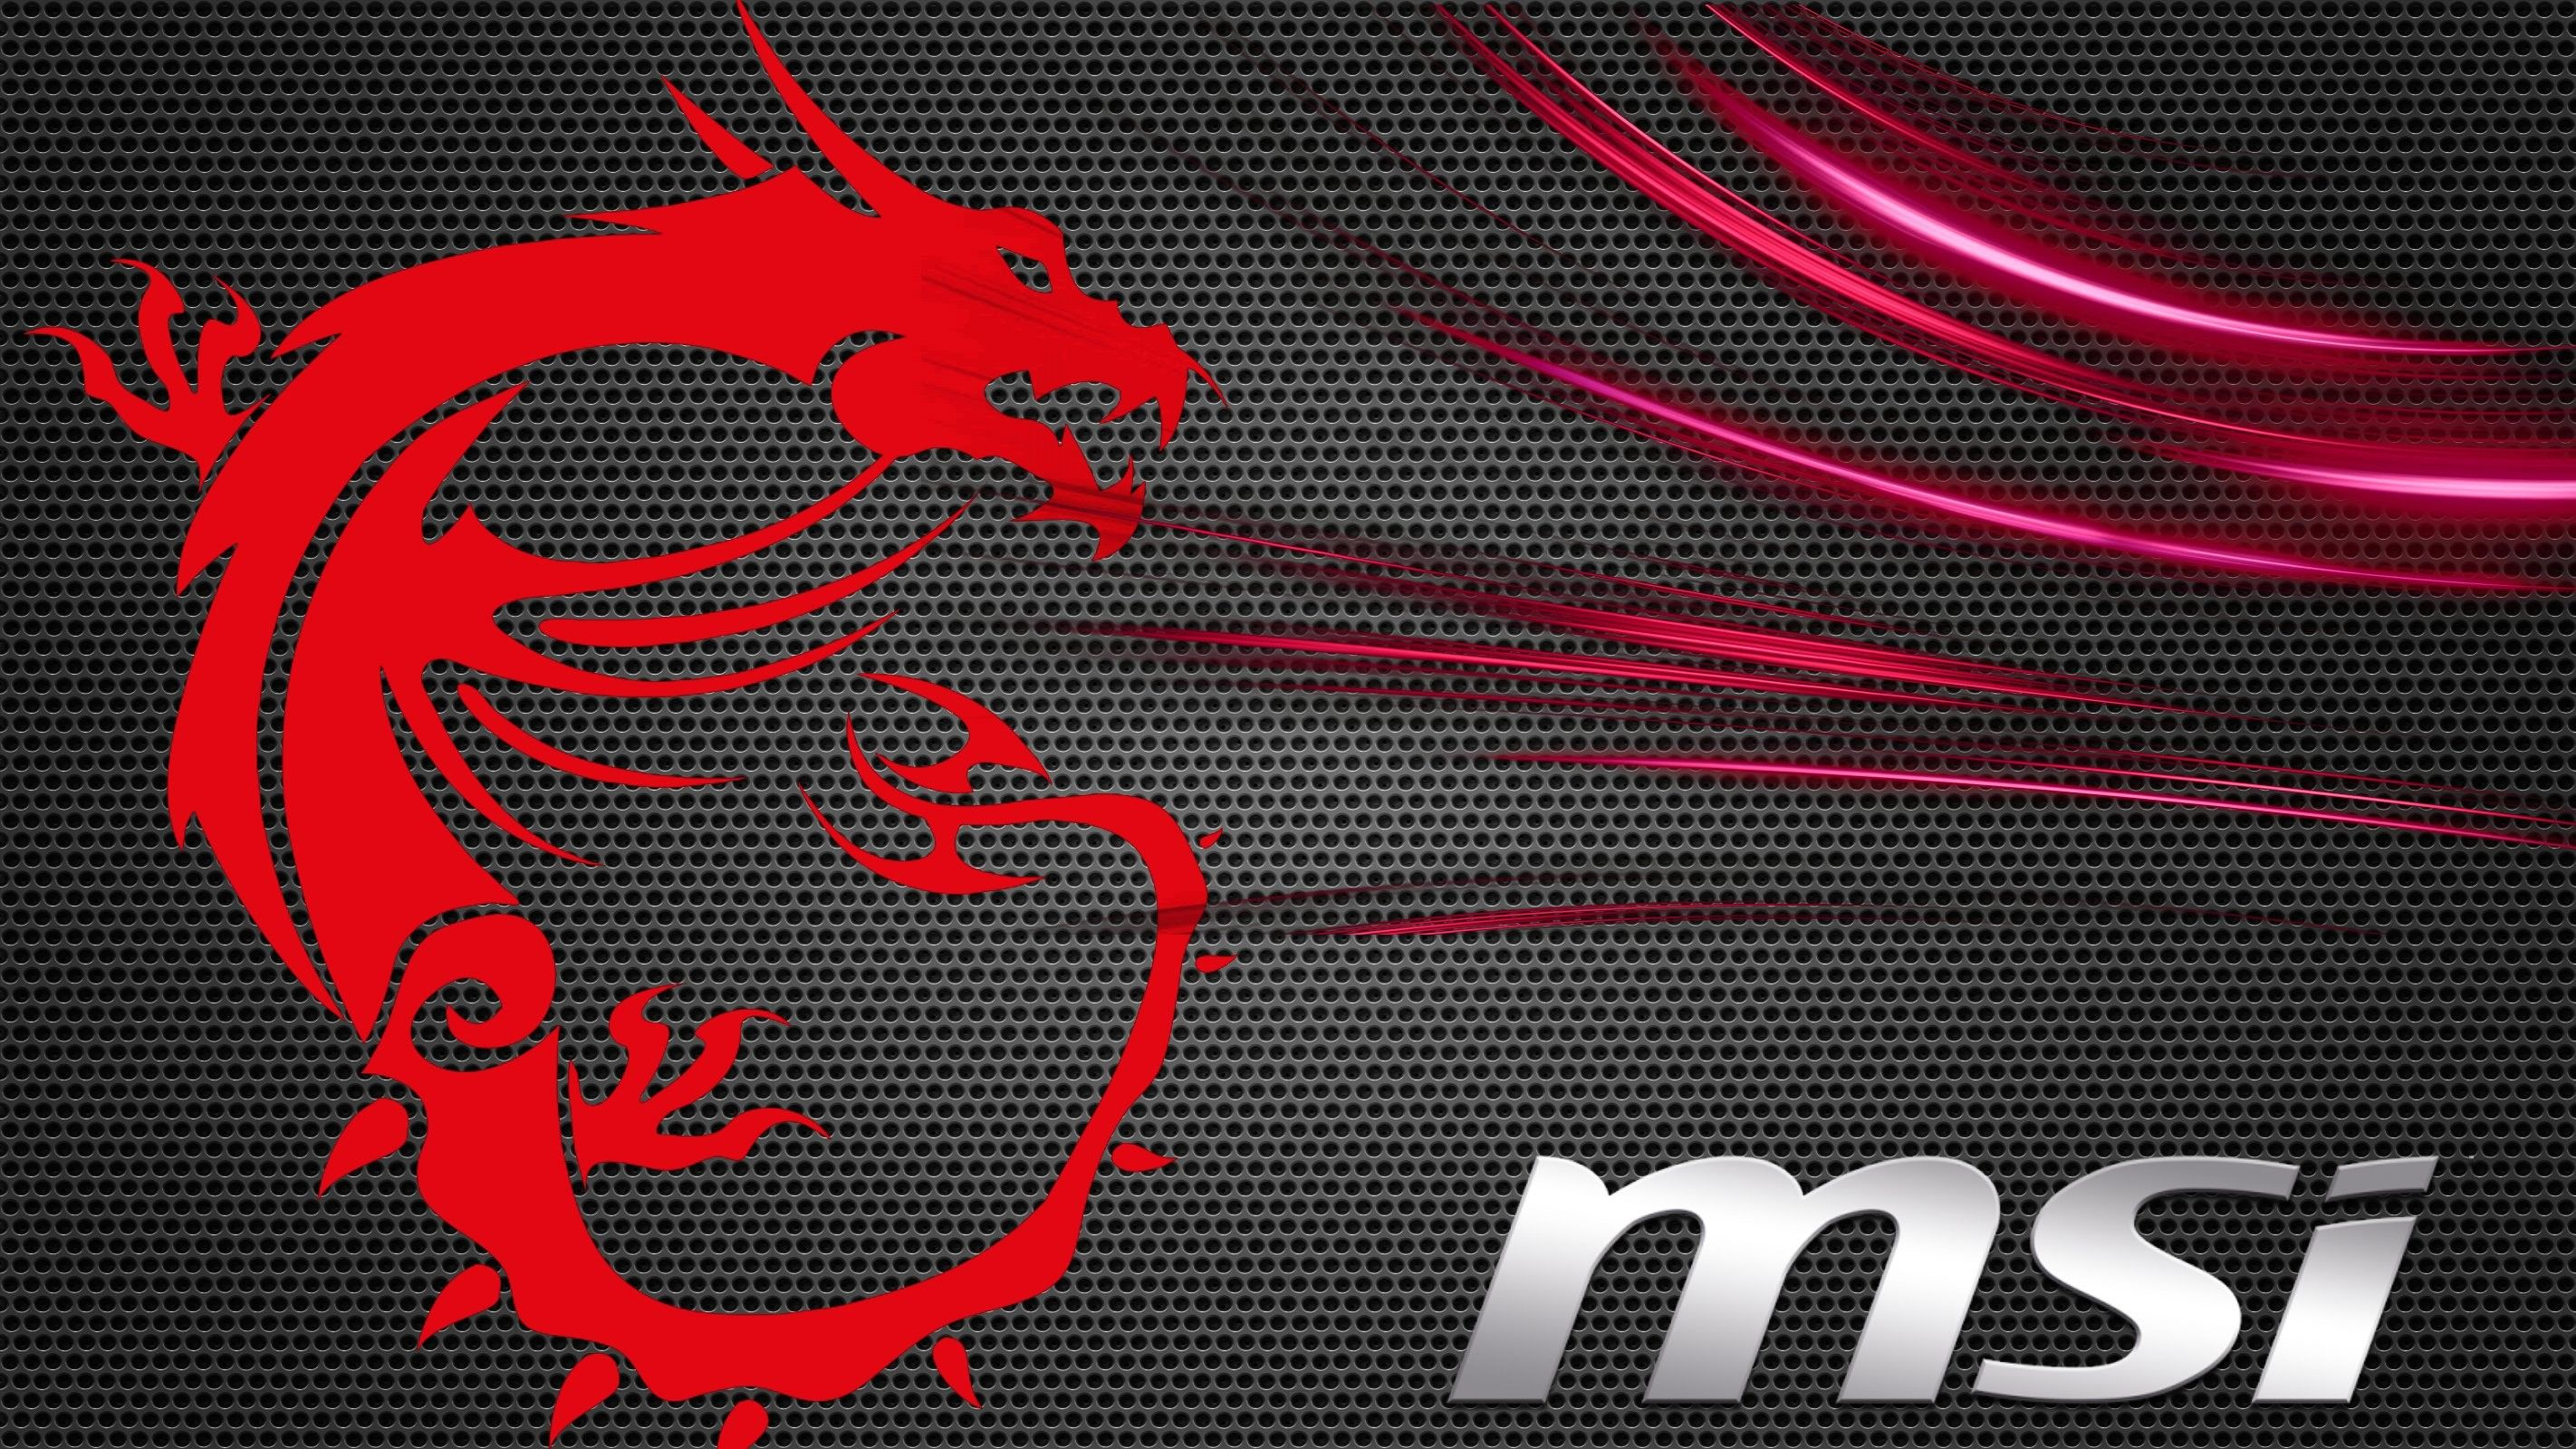 Msi Dragon Wallpaper 1920x1080 80 Images In 2019